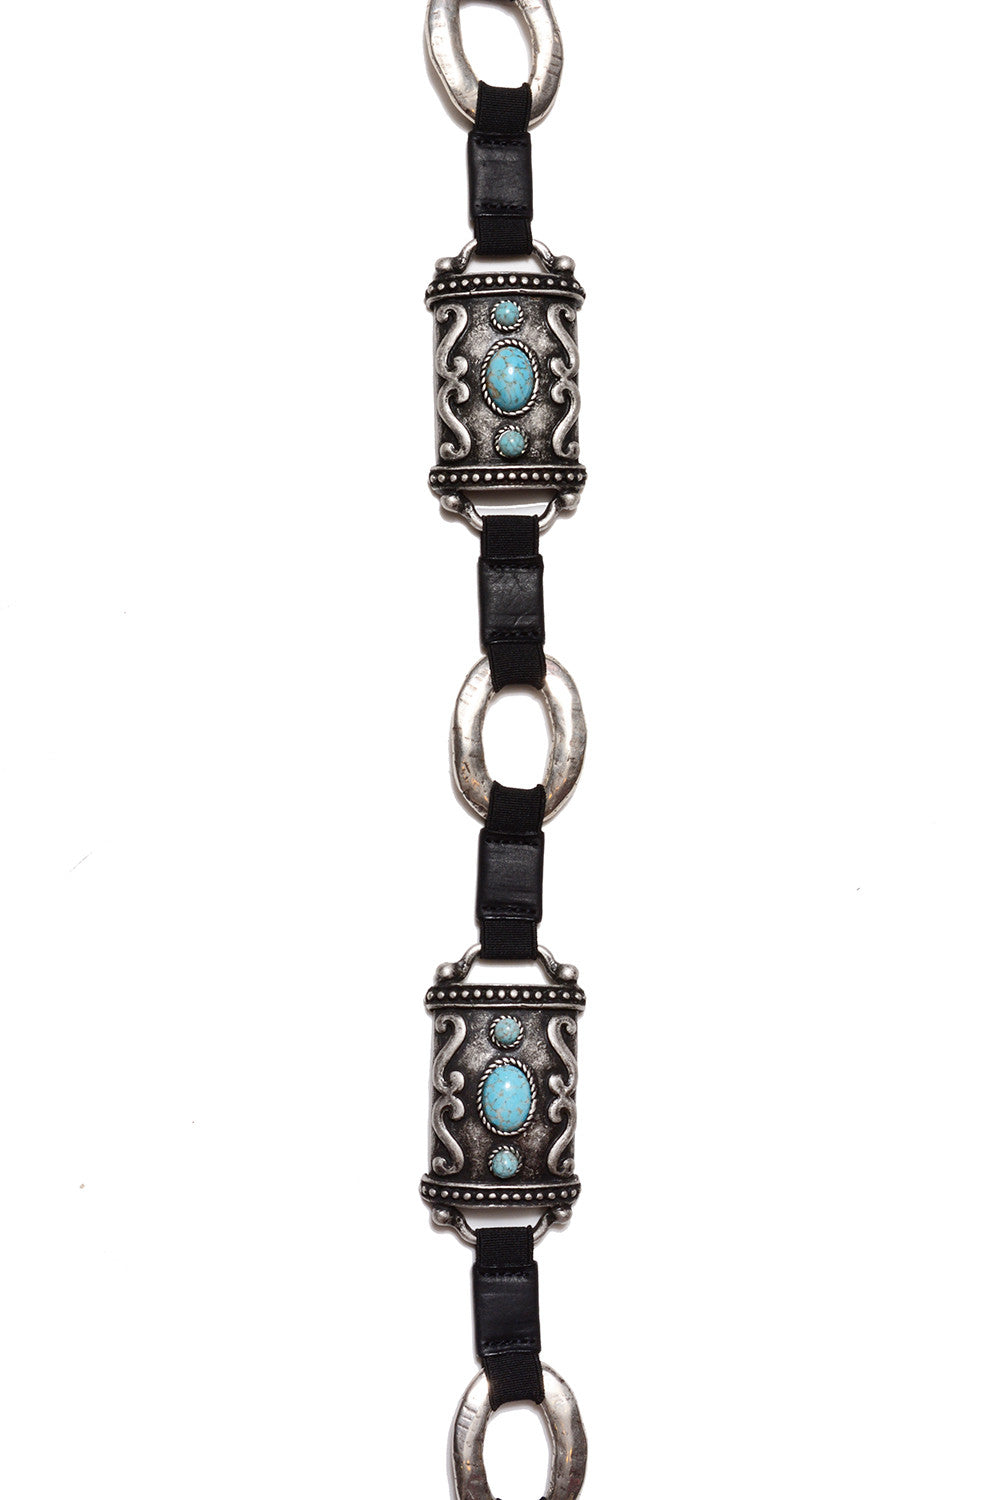 STREETS AHEAD - ANTIQUE SILVER & TURQUOISE RECTANGULAR BELT - FETISH